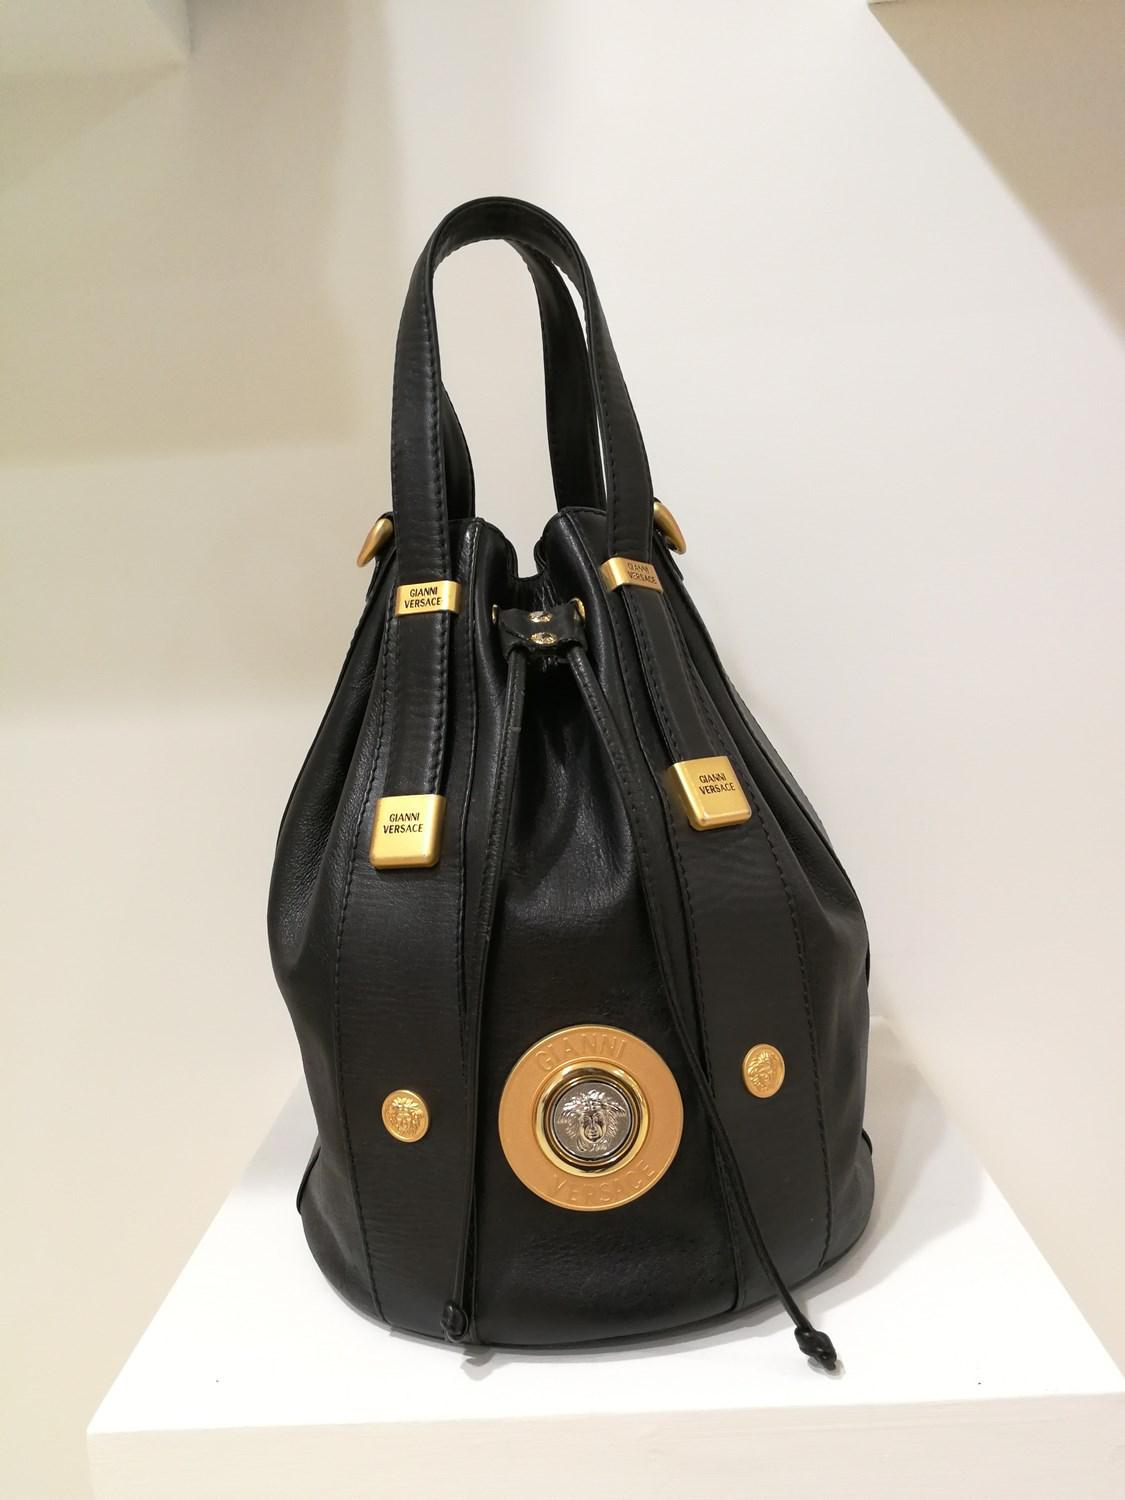 Lyst - Versace Gianni Black Leather Gold And Silver Tone Studs ... 3daf3f177e